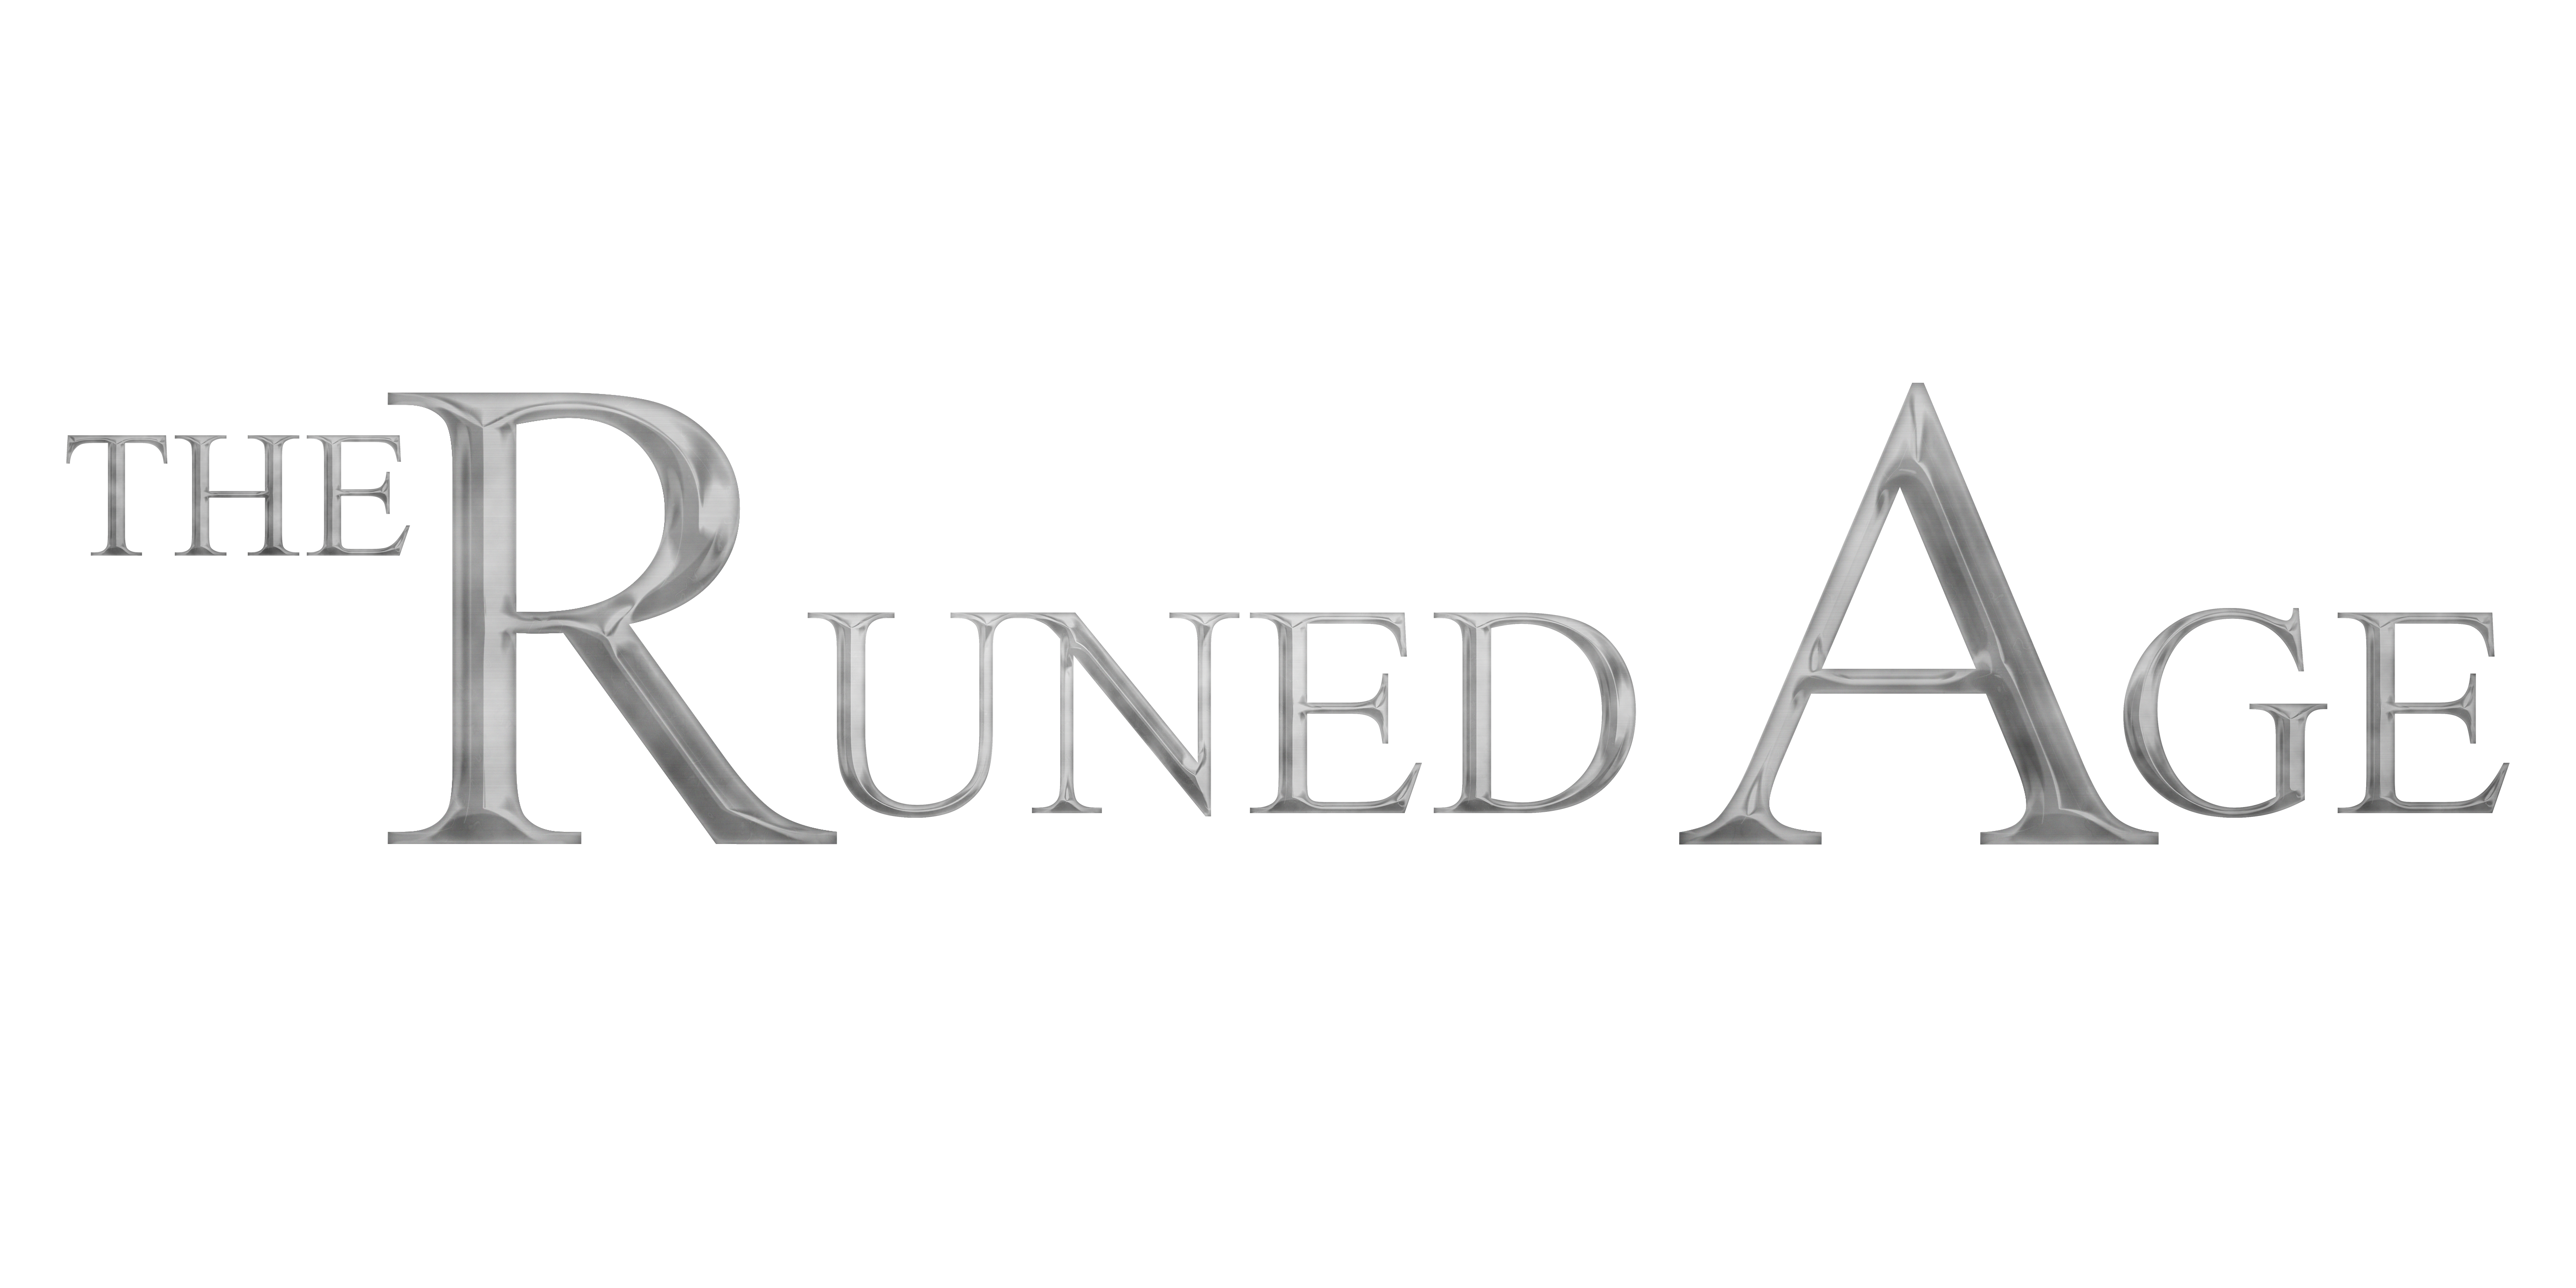 The Runed Age